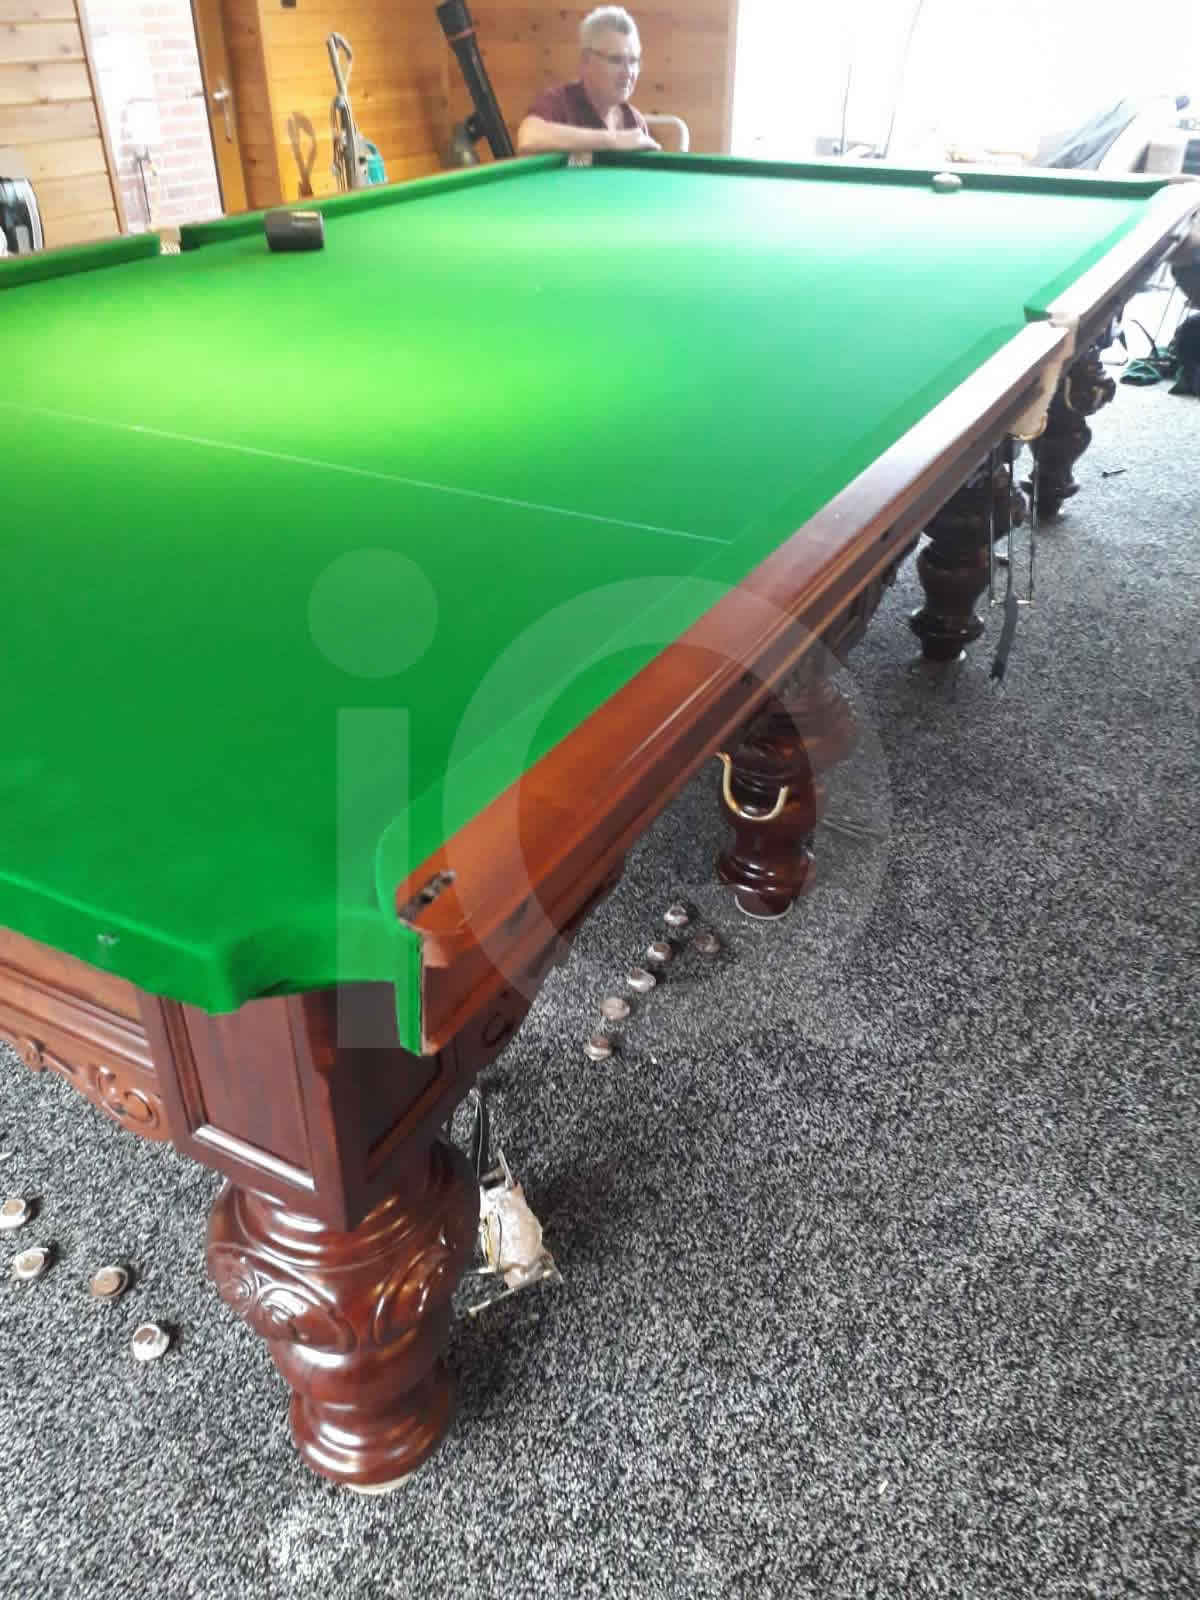 Snooker table recovered by IQ